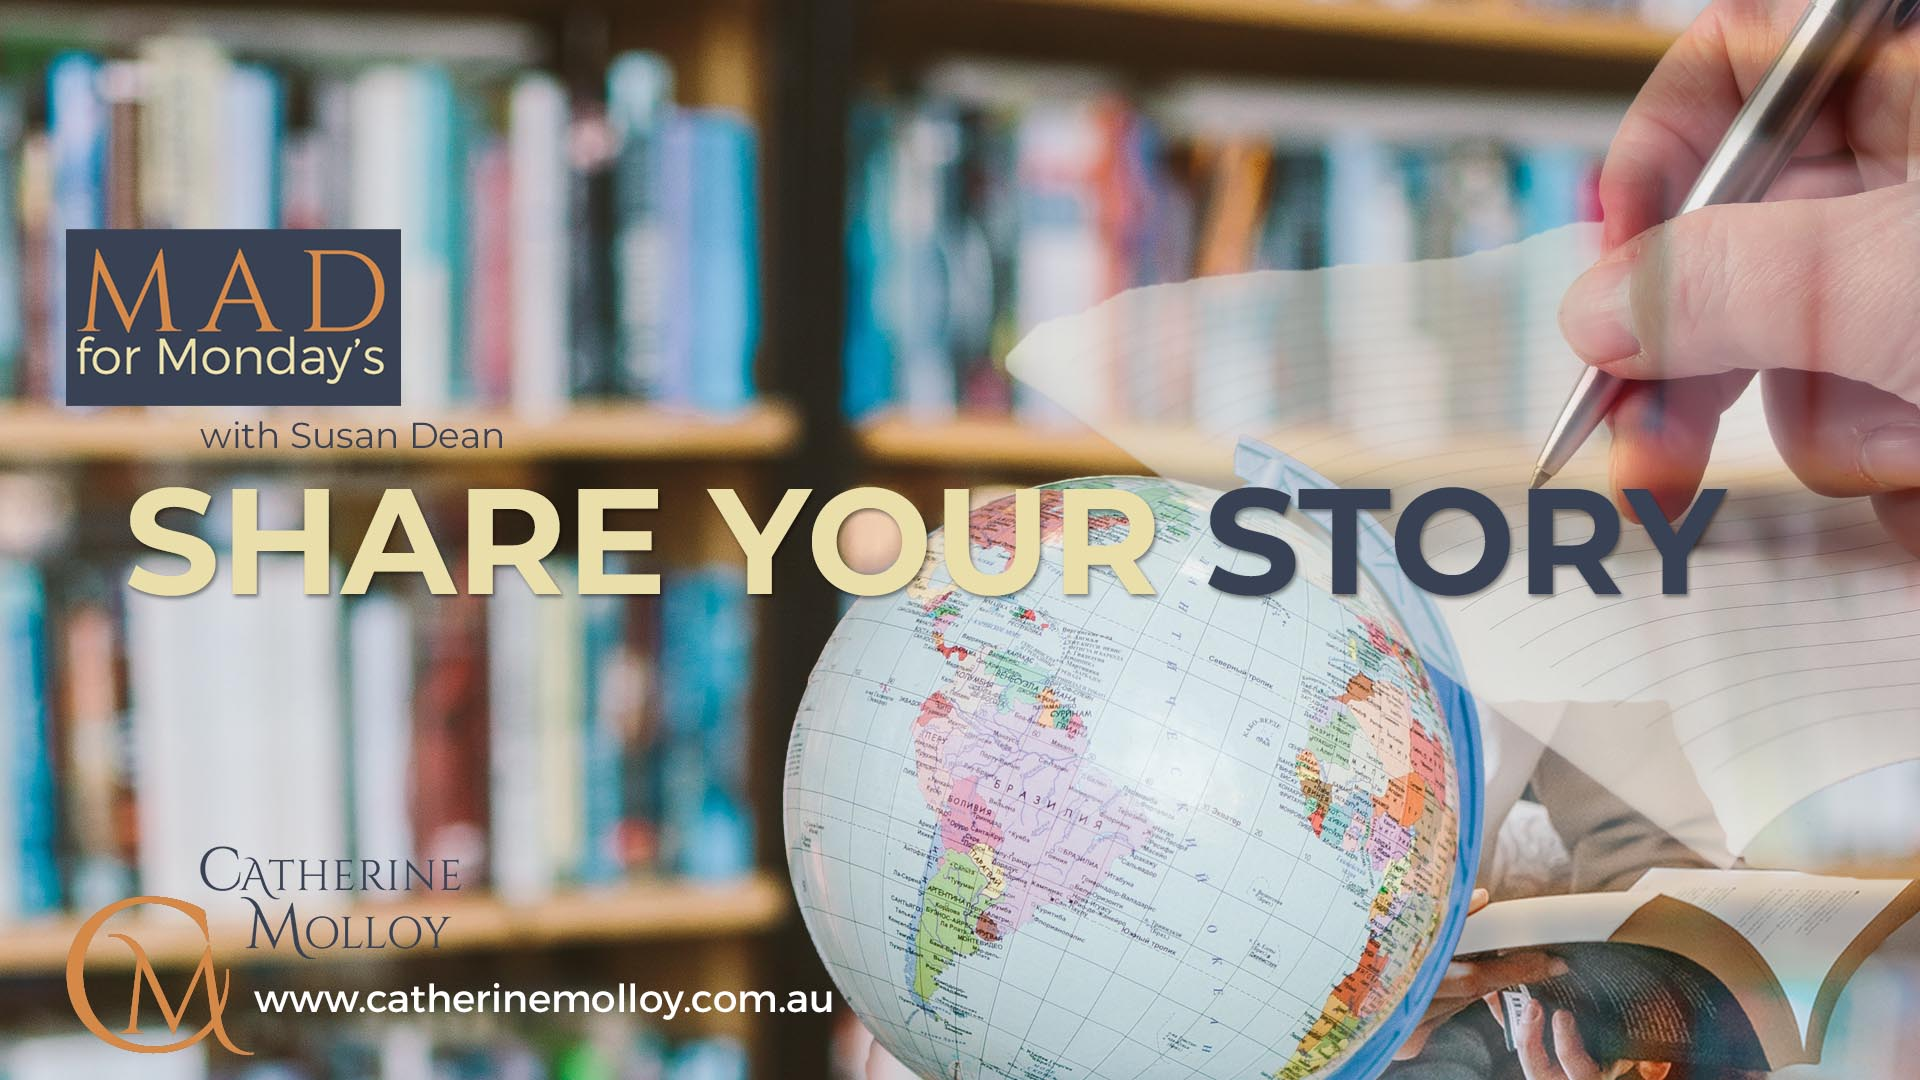 MAD for Monday's – Share Your Story